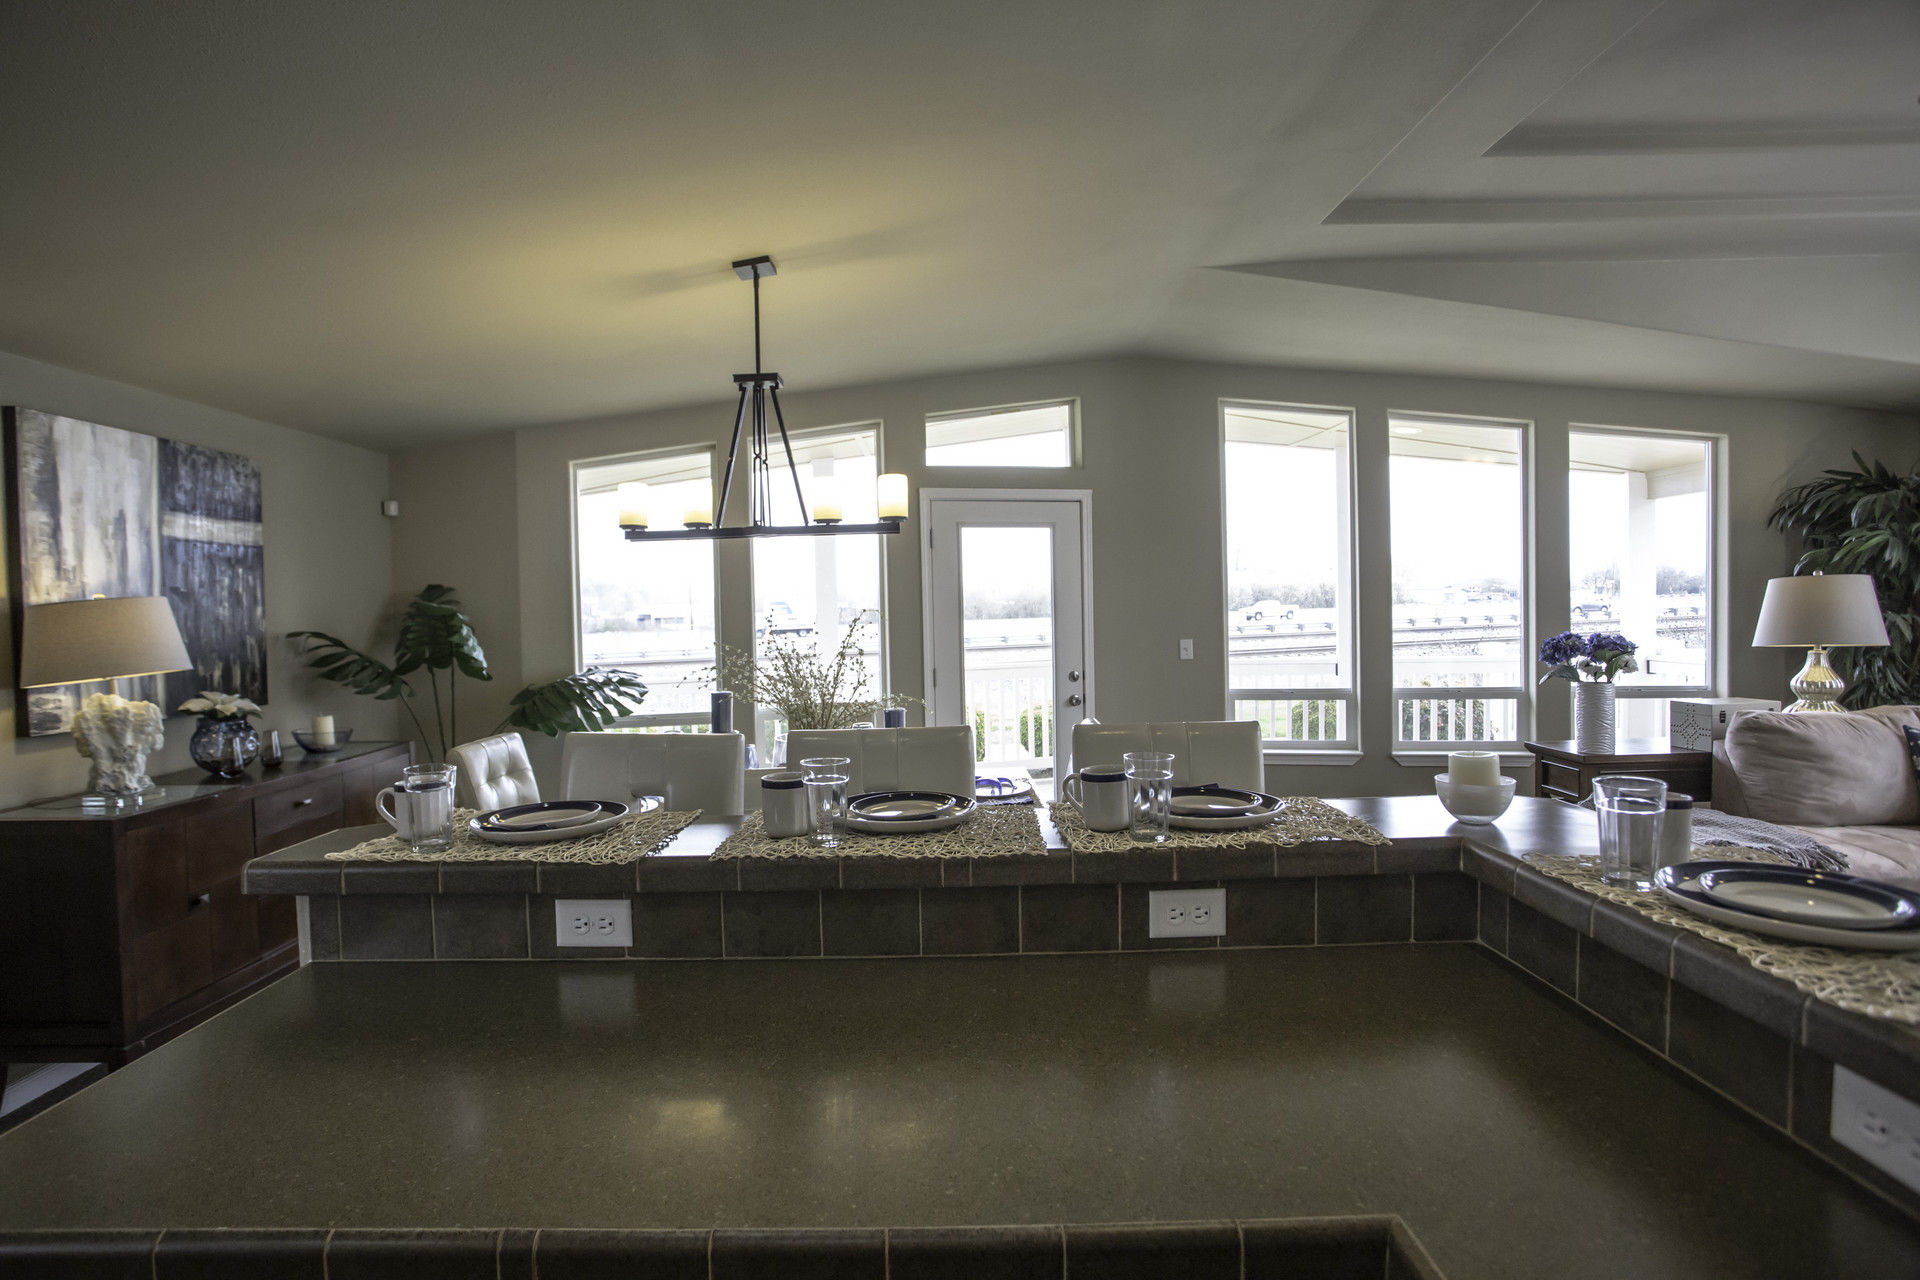 model homes kitchen pictures counter bar palm harbor (albany,or) 2 bedroom manufactured home ...